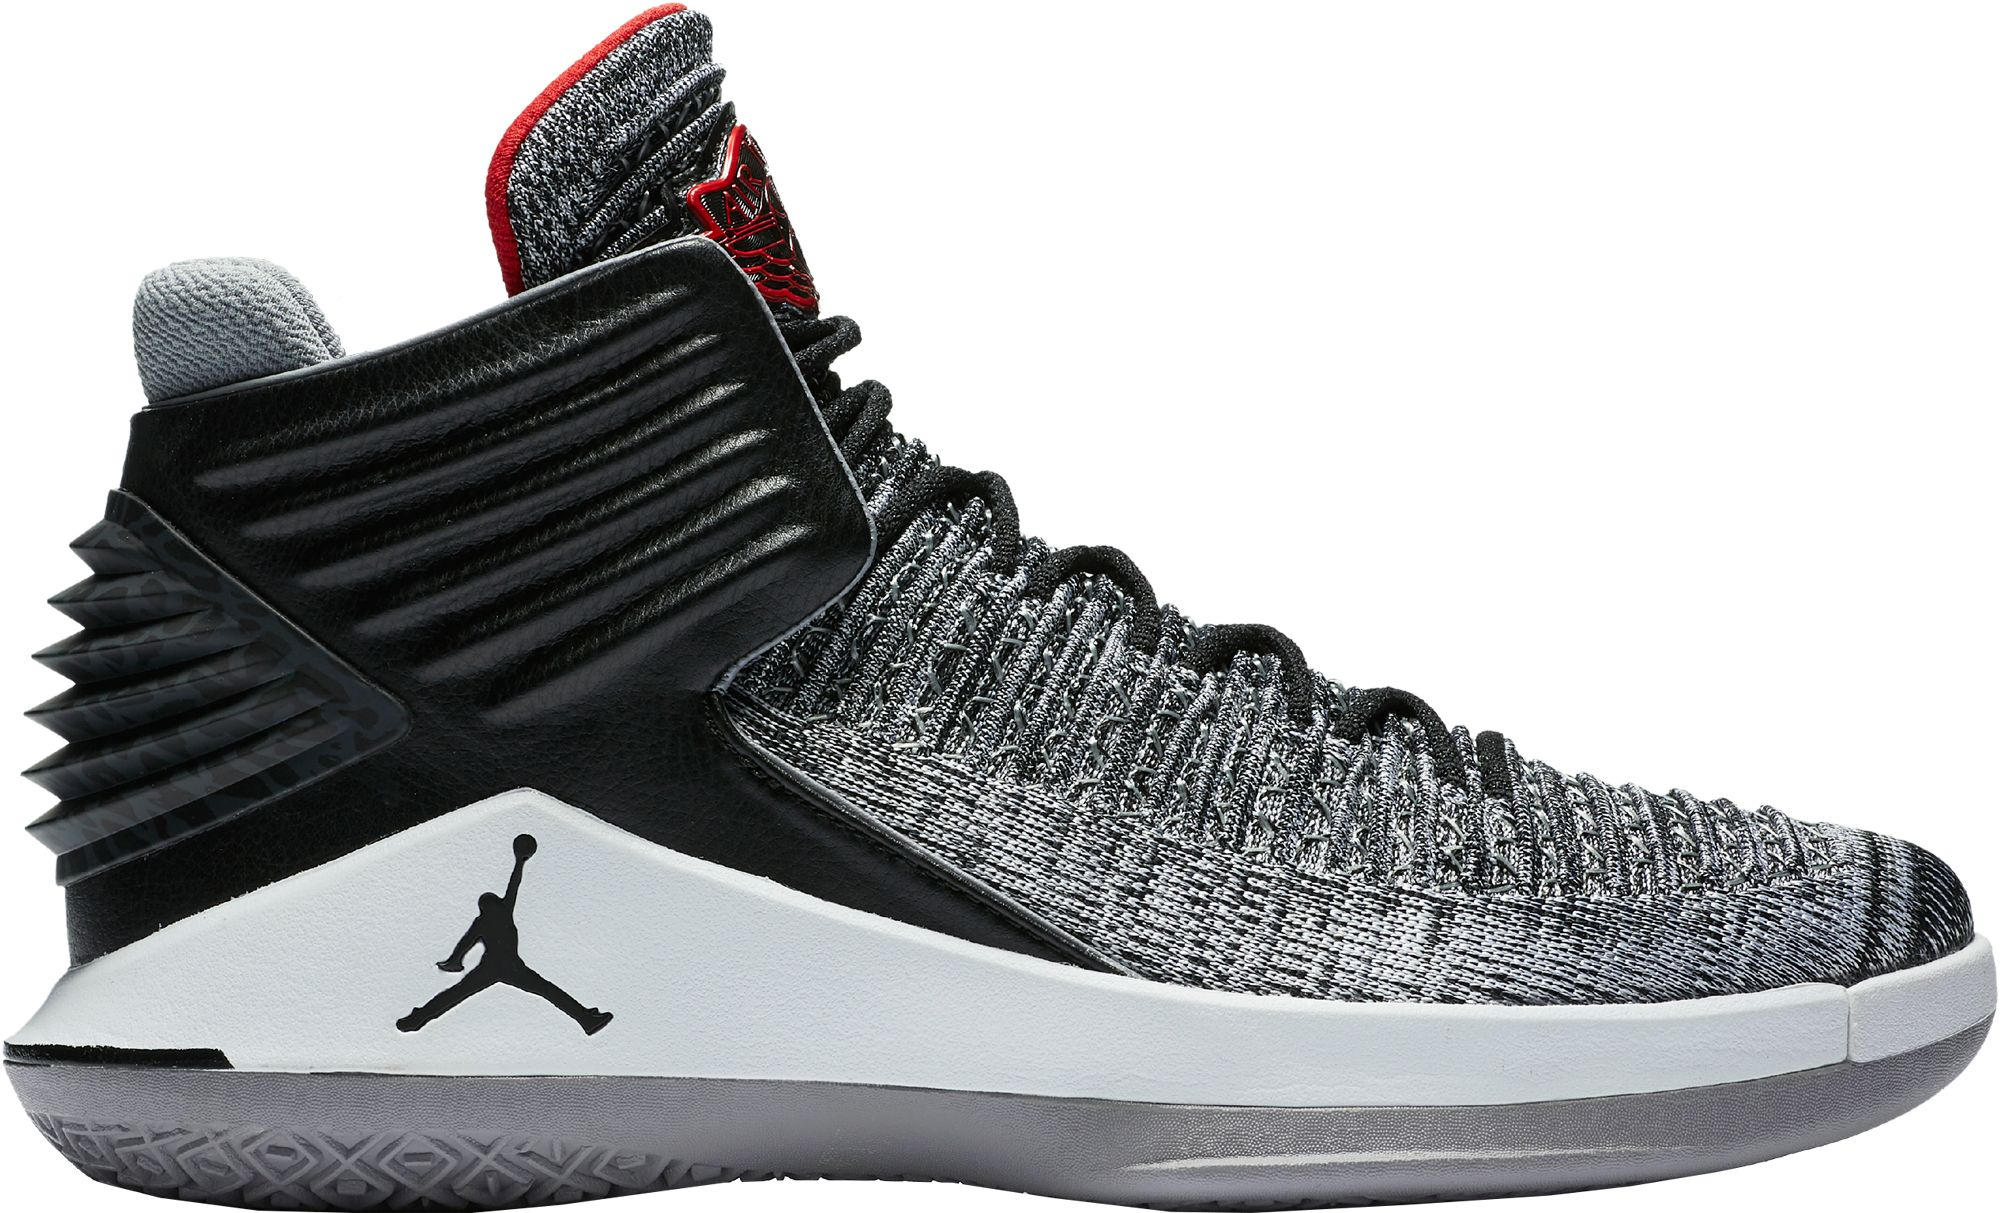 0e6e33e26312a2 Air Jordan XXXII Low AJ 32 University Blue Black White Metallic Silver  Men s Basketball Shoes